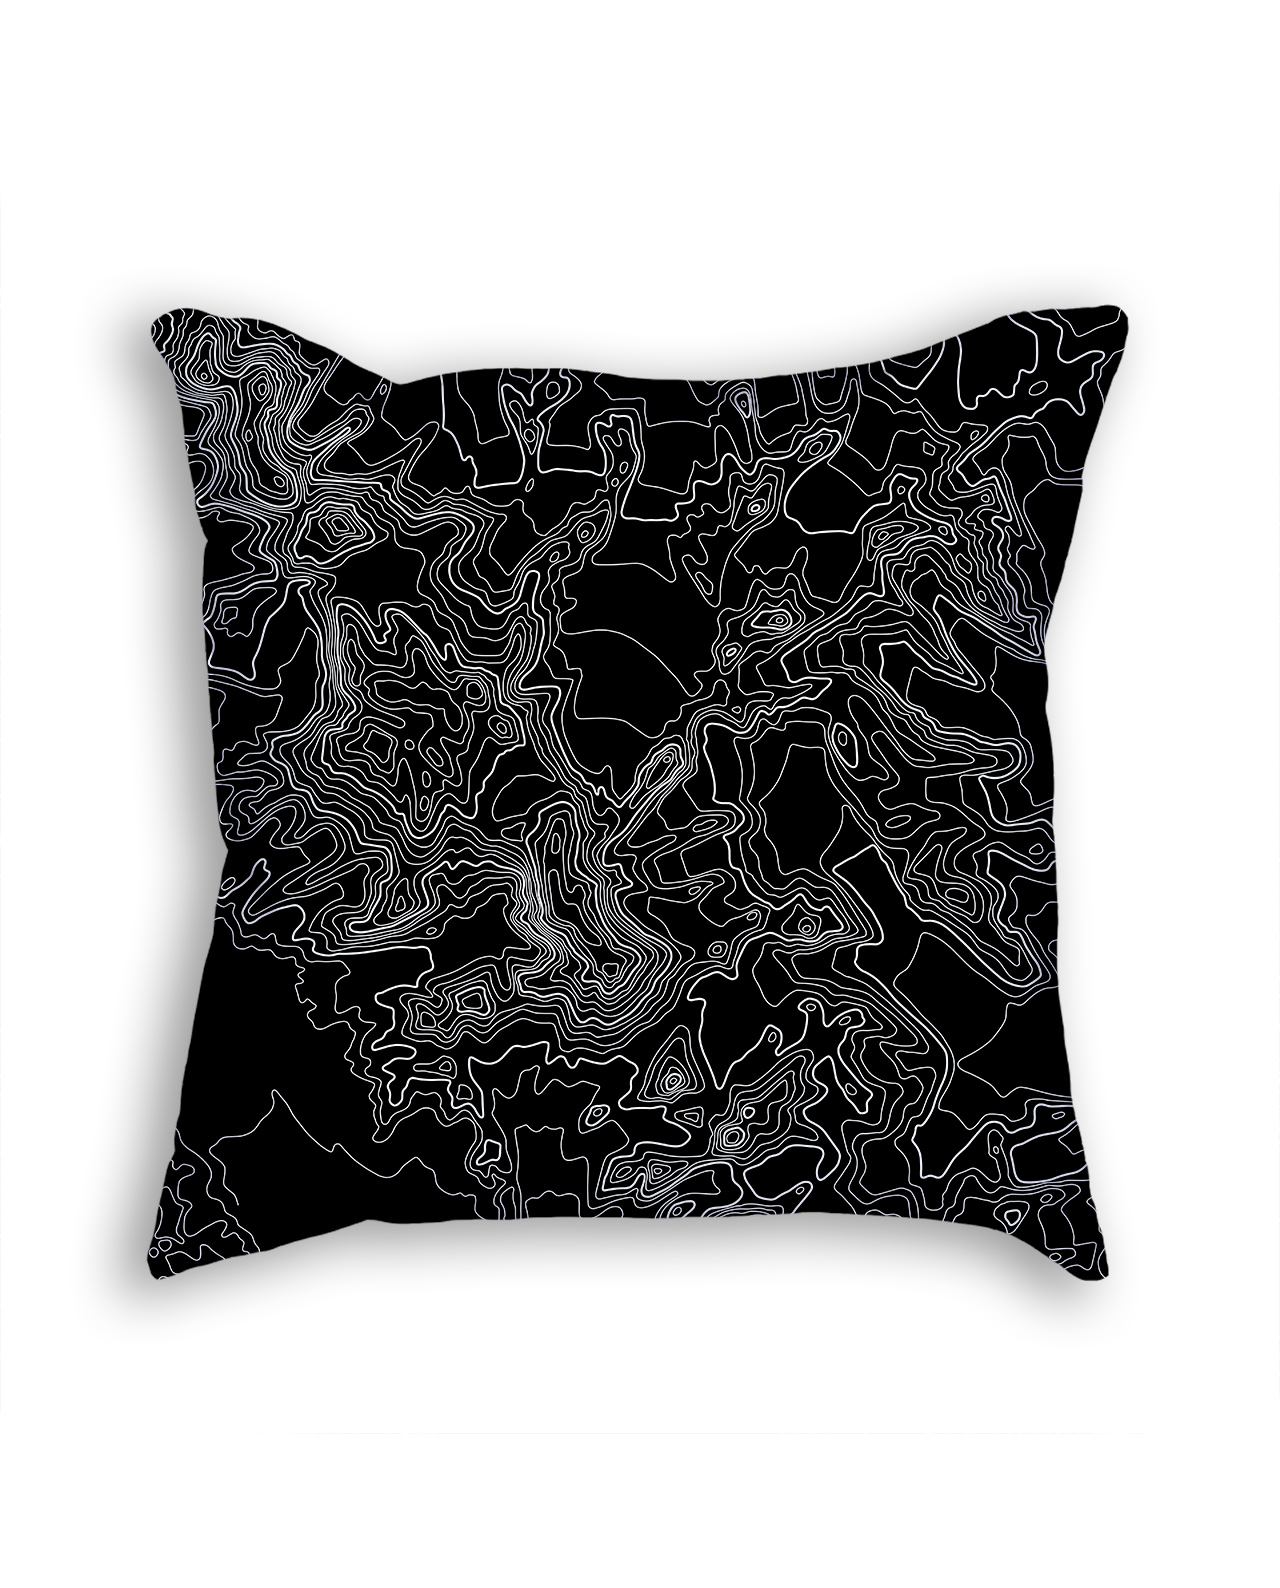 Vinson Massif Antarctica Decorative Throw Pillow Black